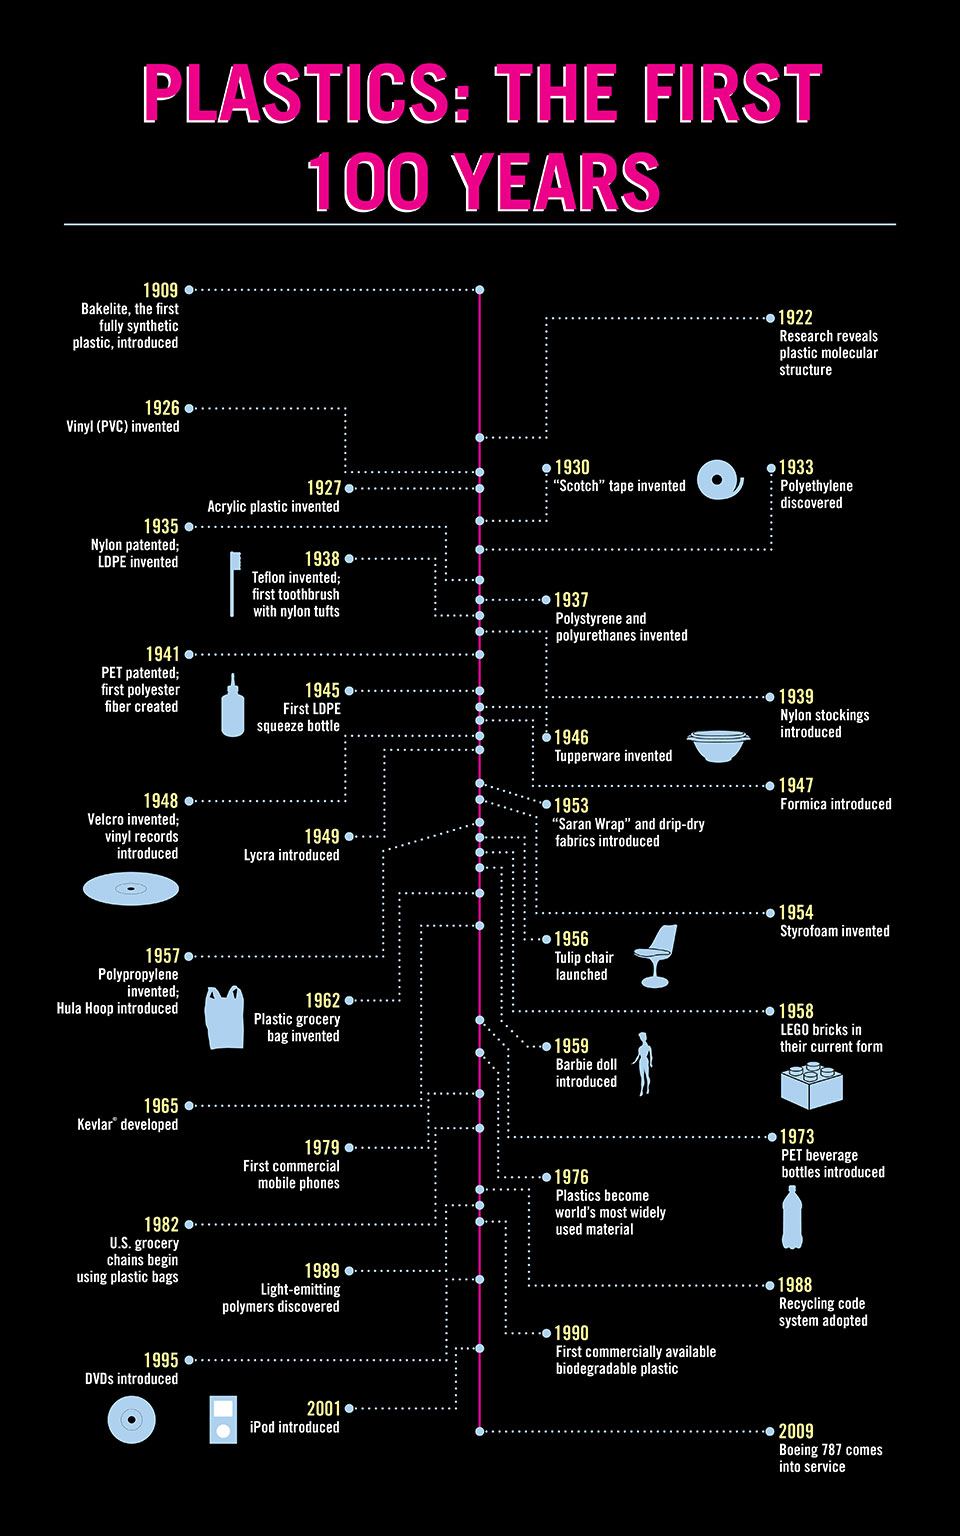 plastics-the-first-100-years